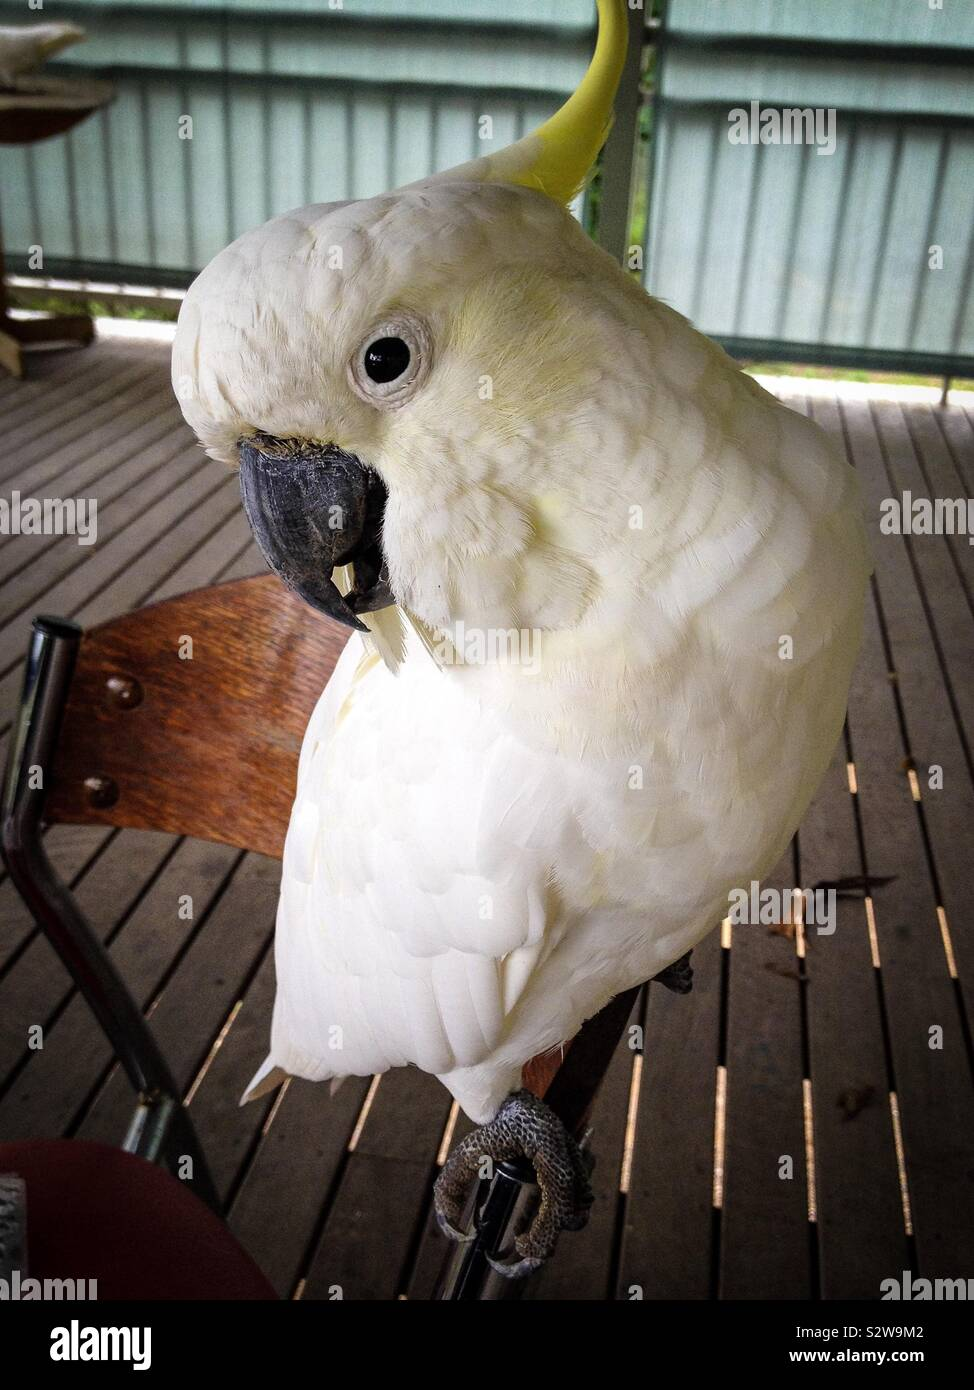 A cheeky and tame native Australian yellow crested cockatoo bird saying g'day mate Stock Photo